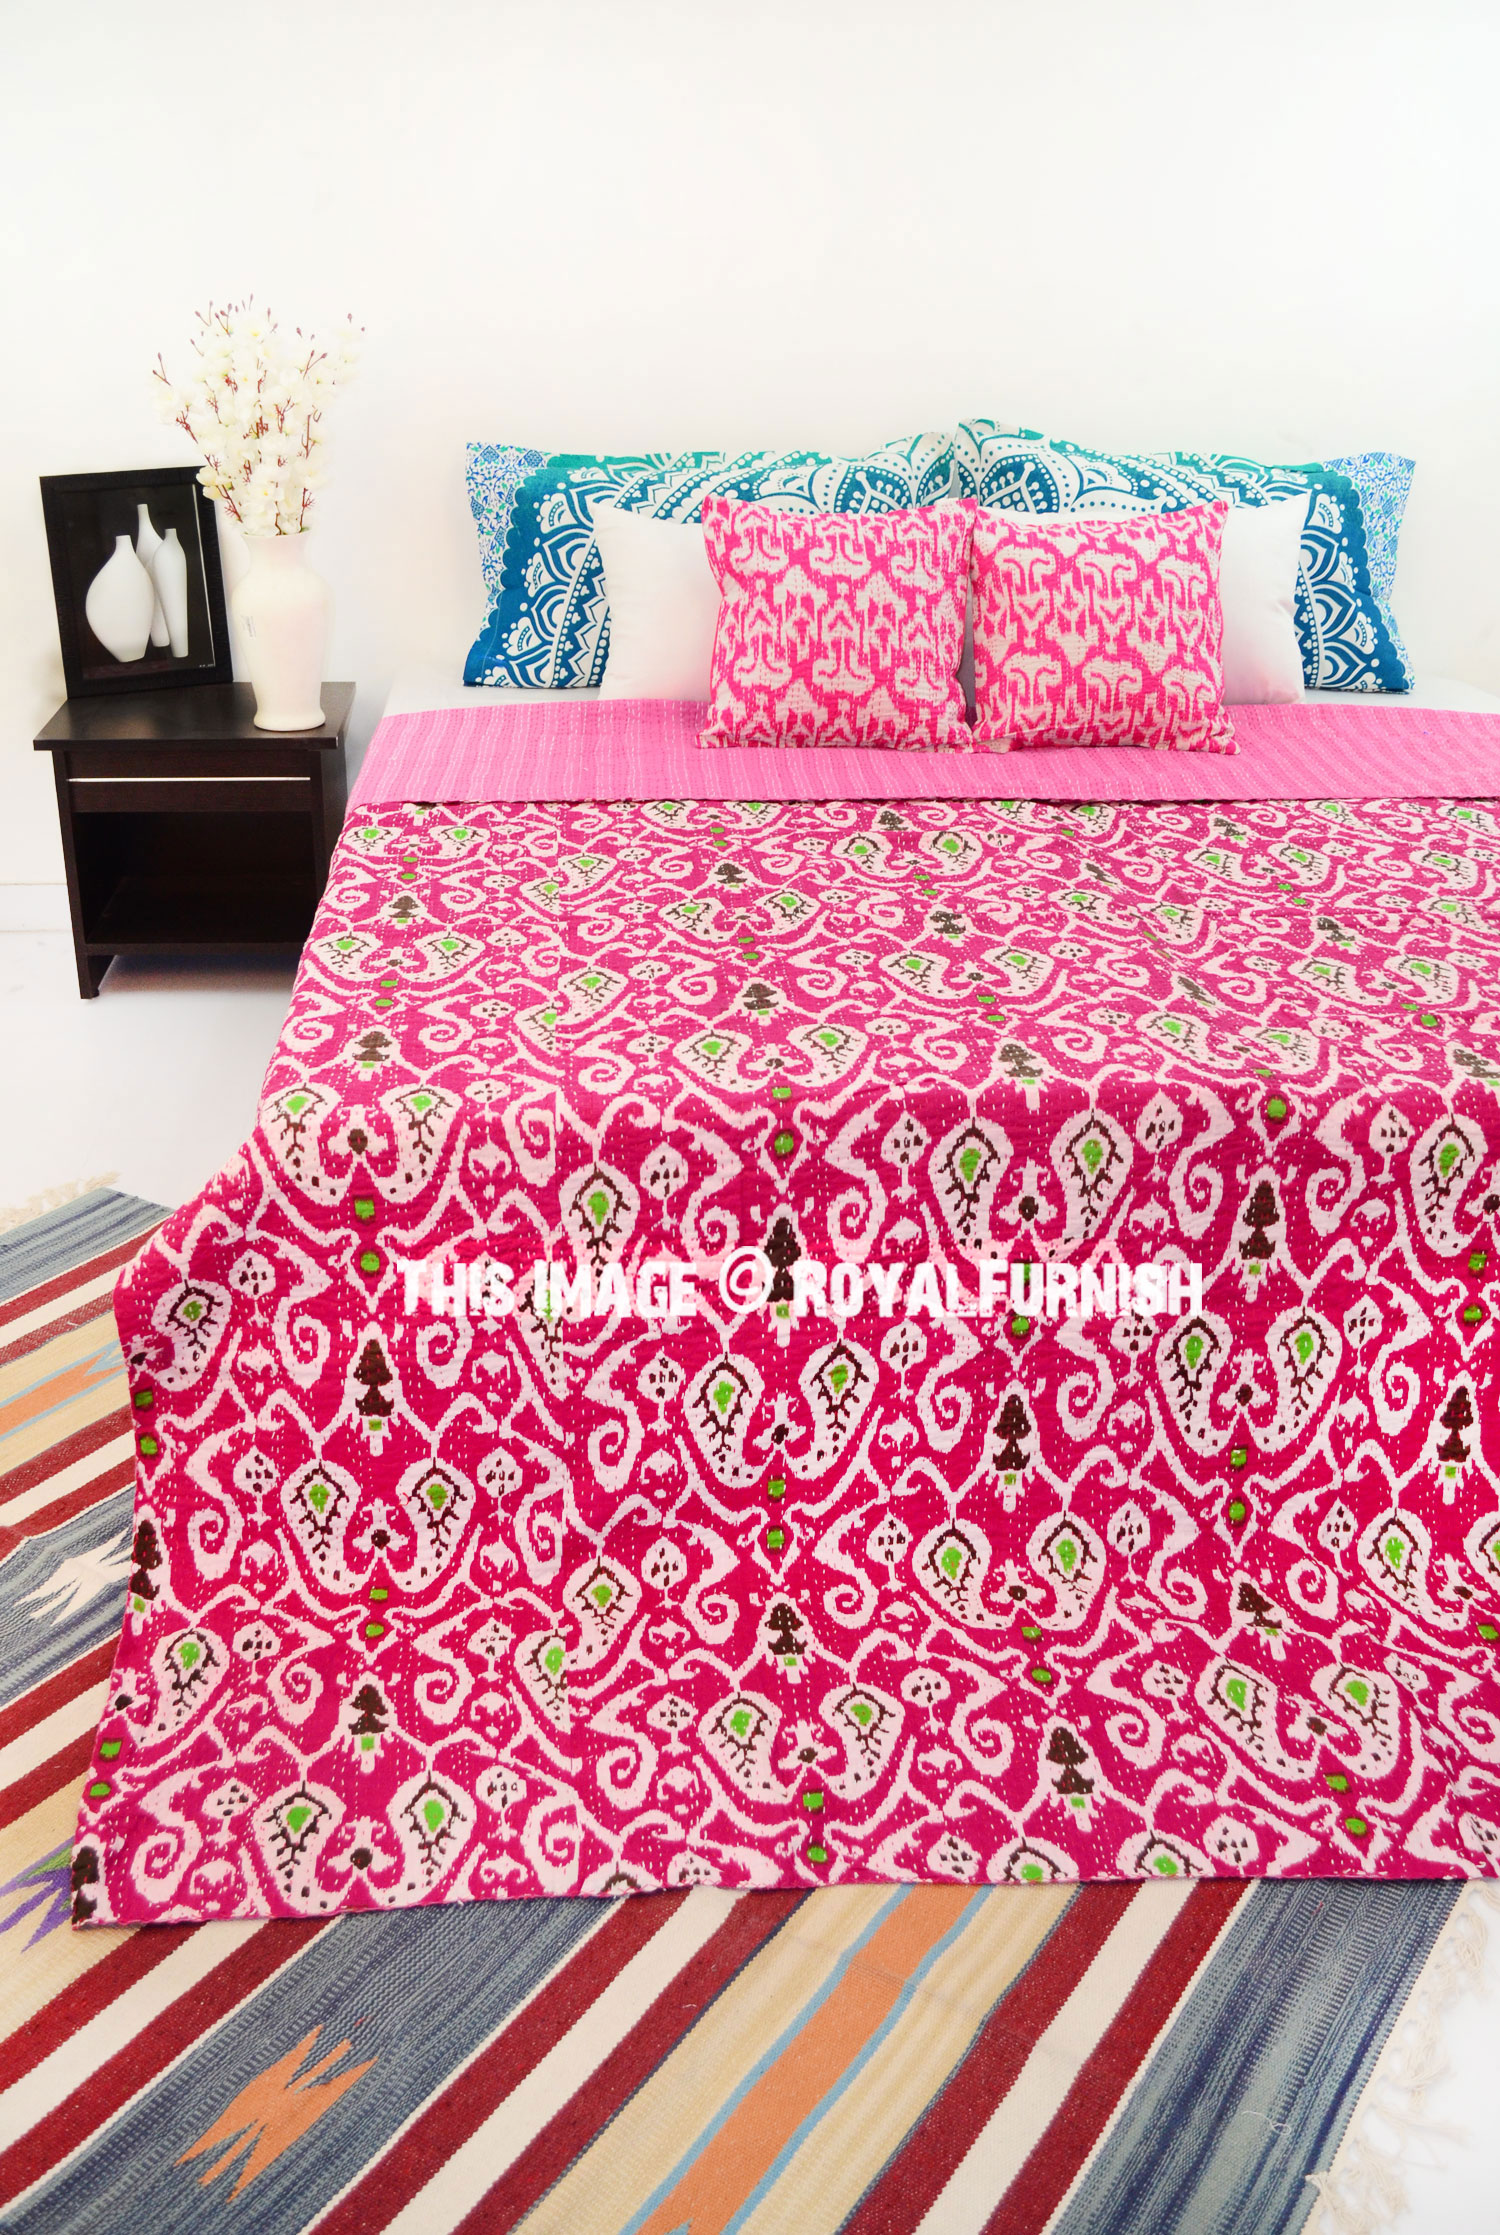 Pink Queen Size Paisley Ikat Kantha Quilt Blanket Bedding